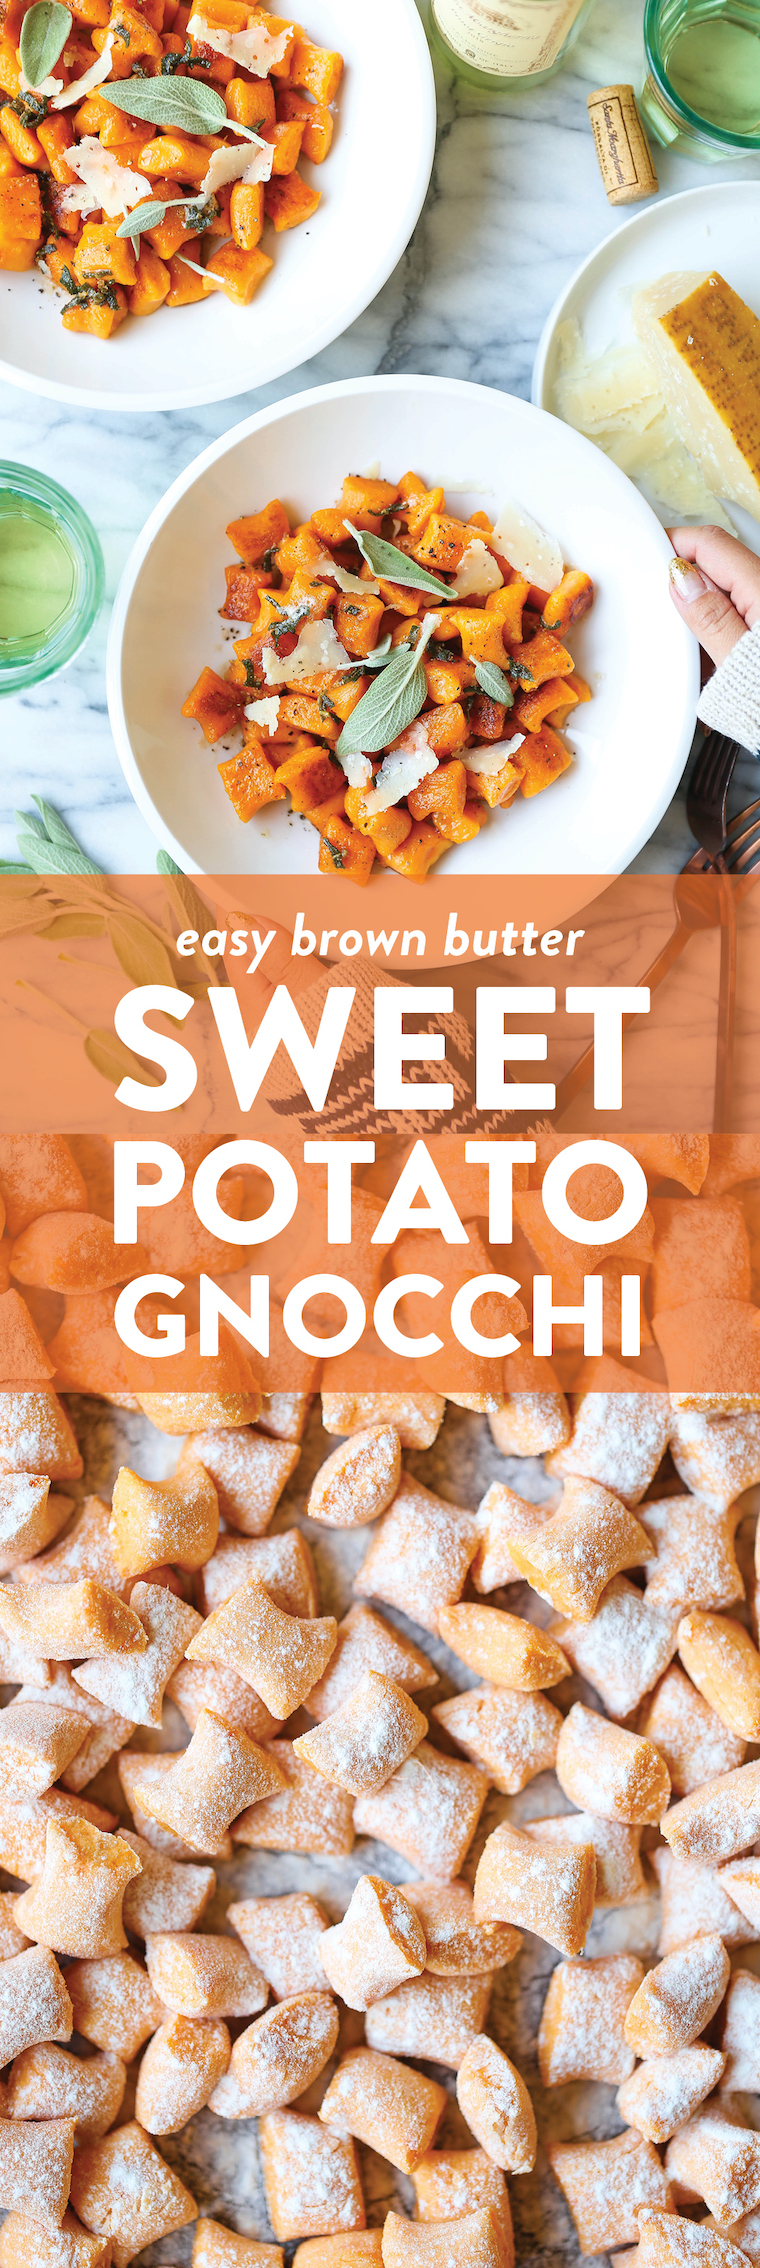 Brown Butter Sweet Potato Gnocchi - Homemade gnocchi is easier to make than you think! So light and so pillowy using just 4 ingredients! SO SO GOOD.